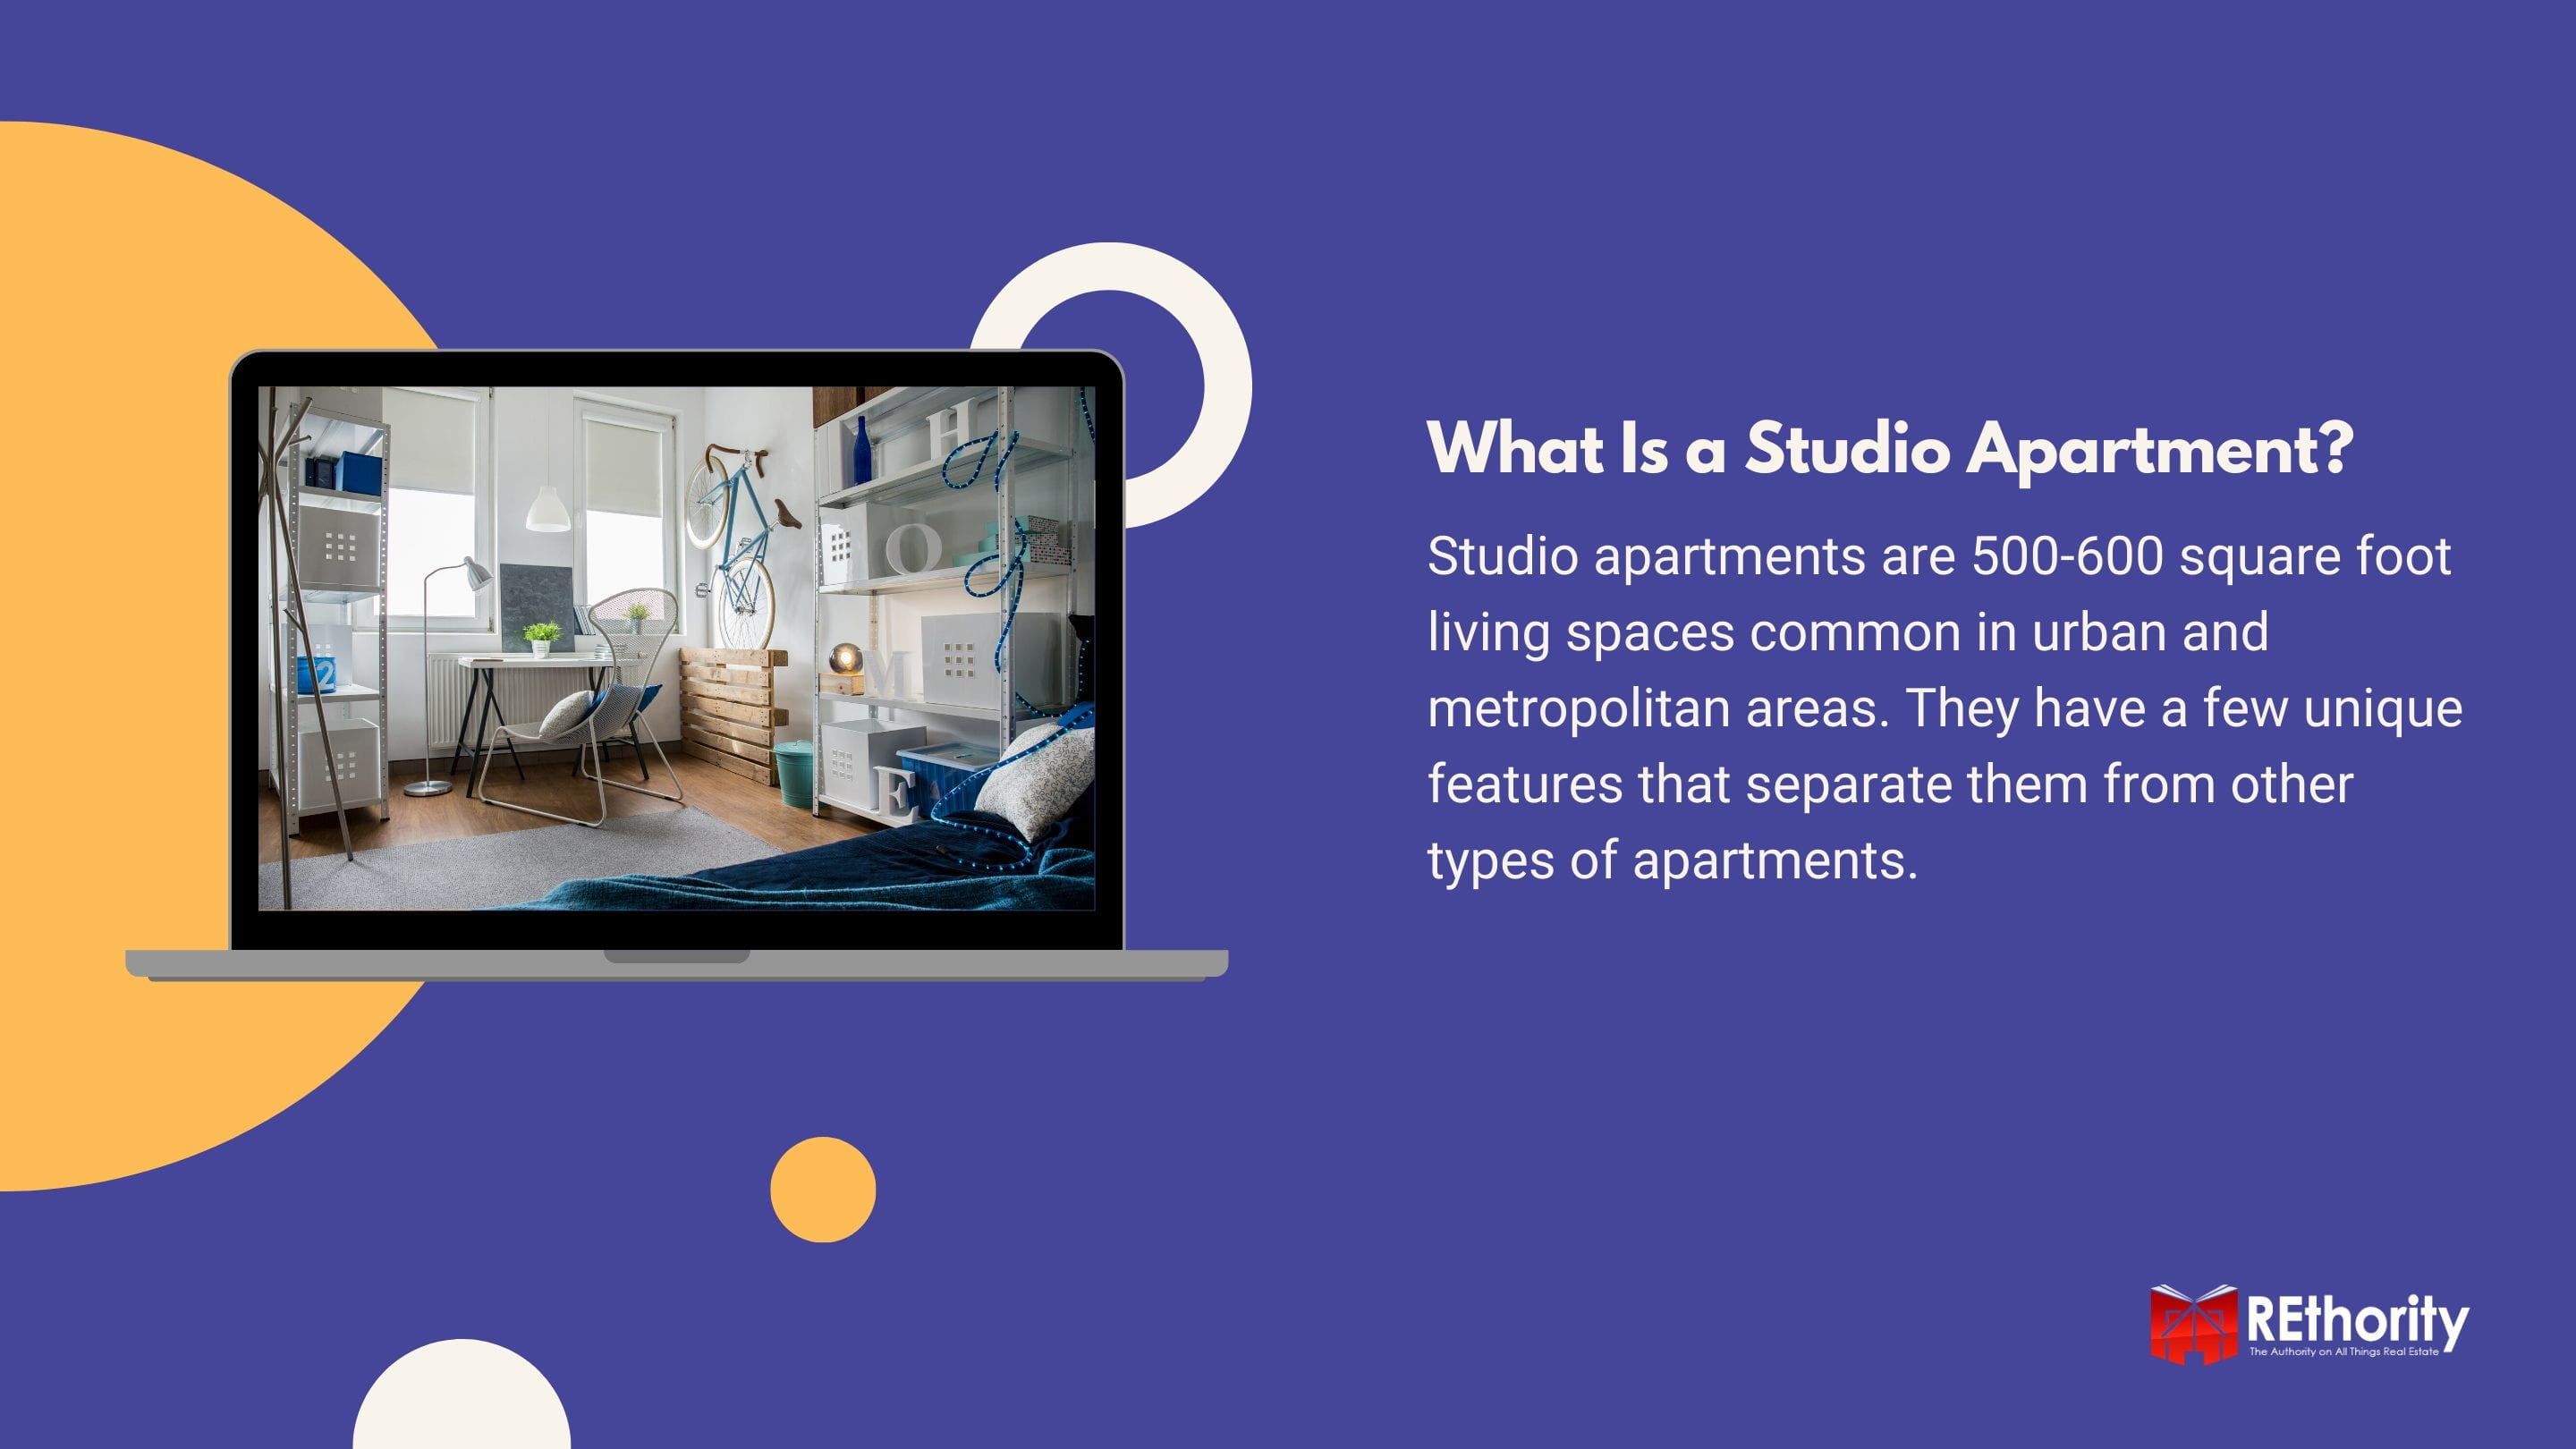 What Is a Studio Apartment graphic against blue background and an image of a studio apartment displayed on a silver laptop